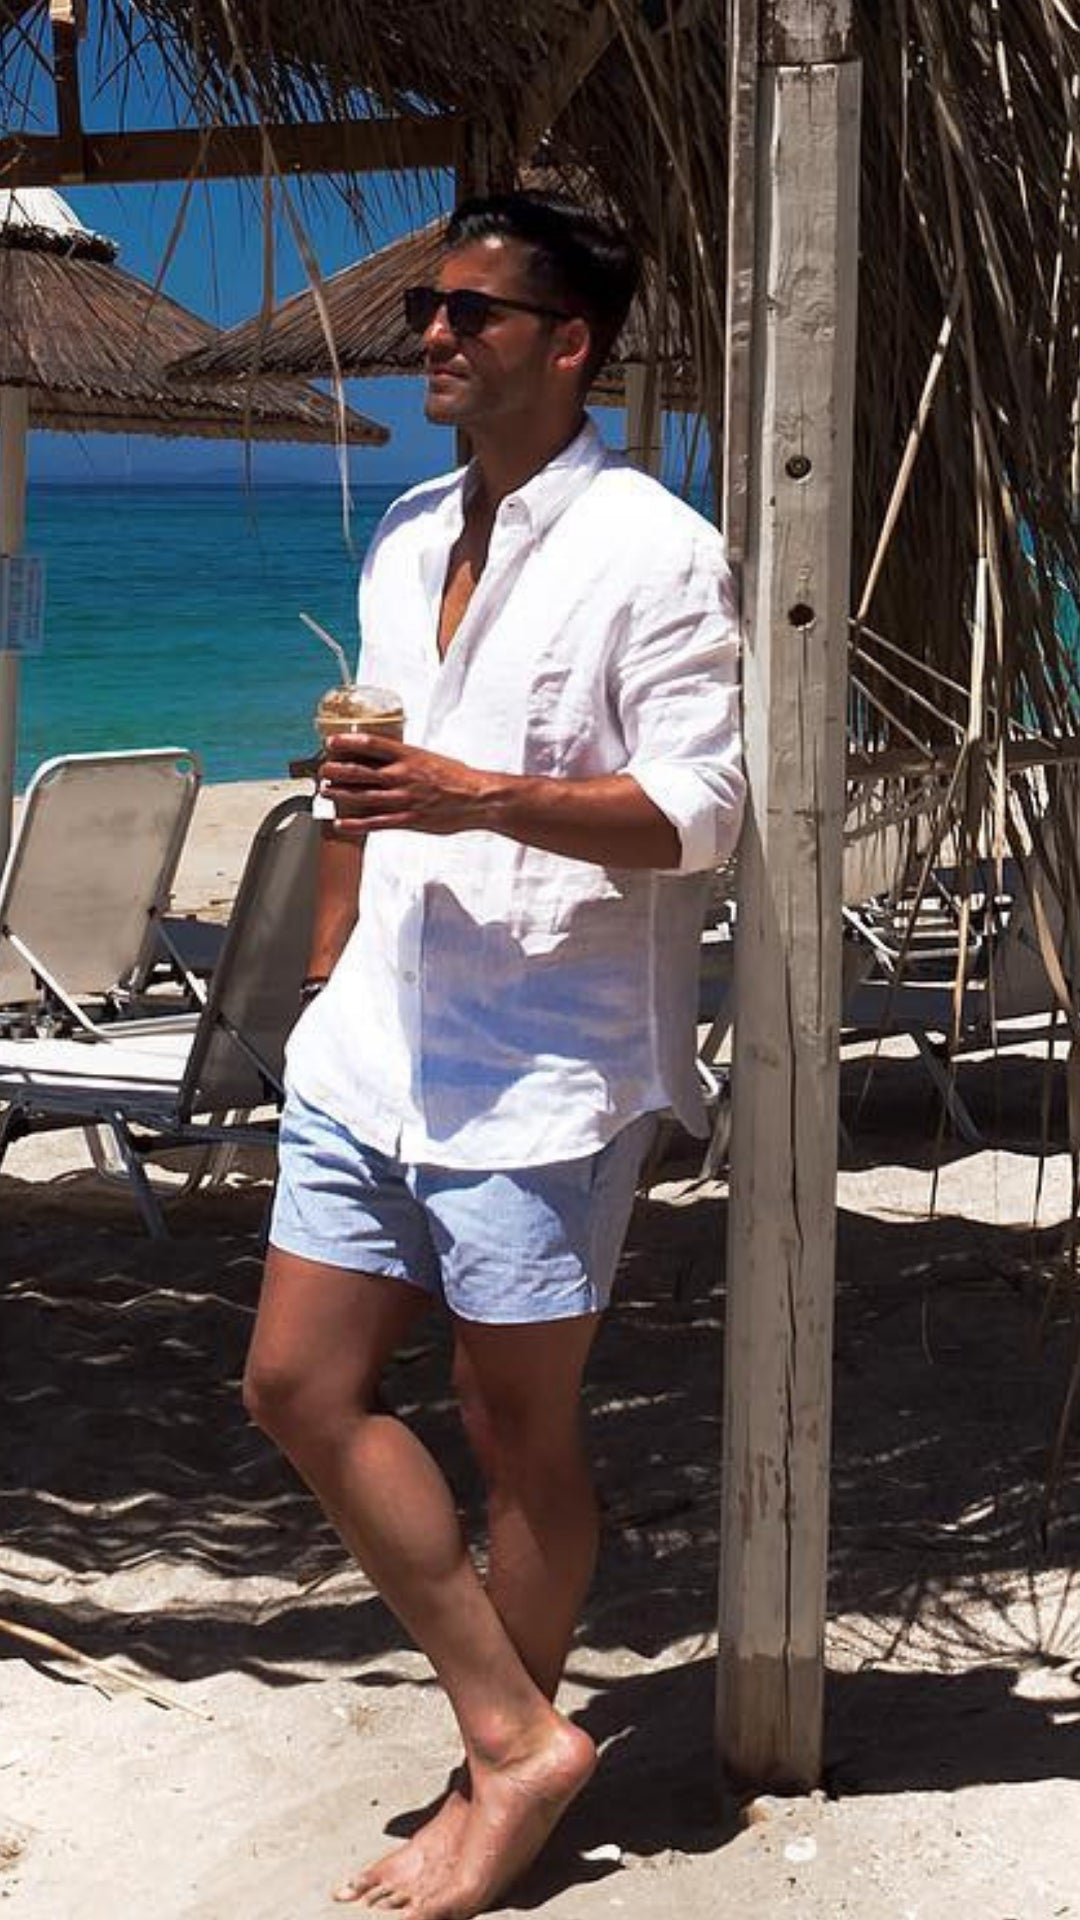 900749a1f5 5 Beach Outfits For Men #beachoutfits #mensfashion